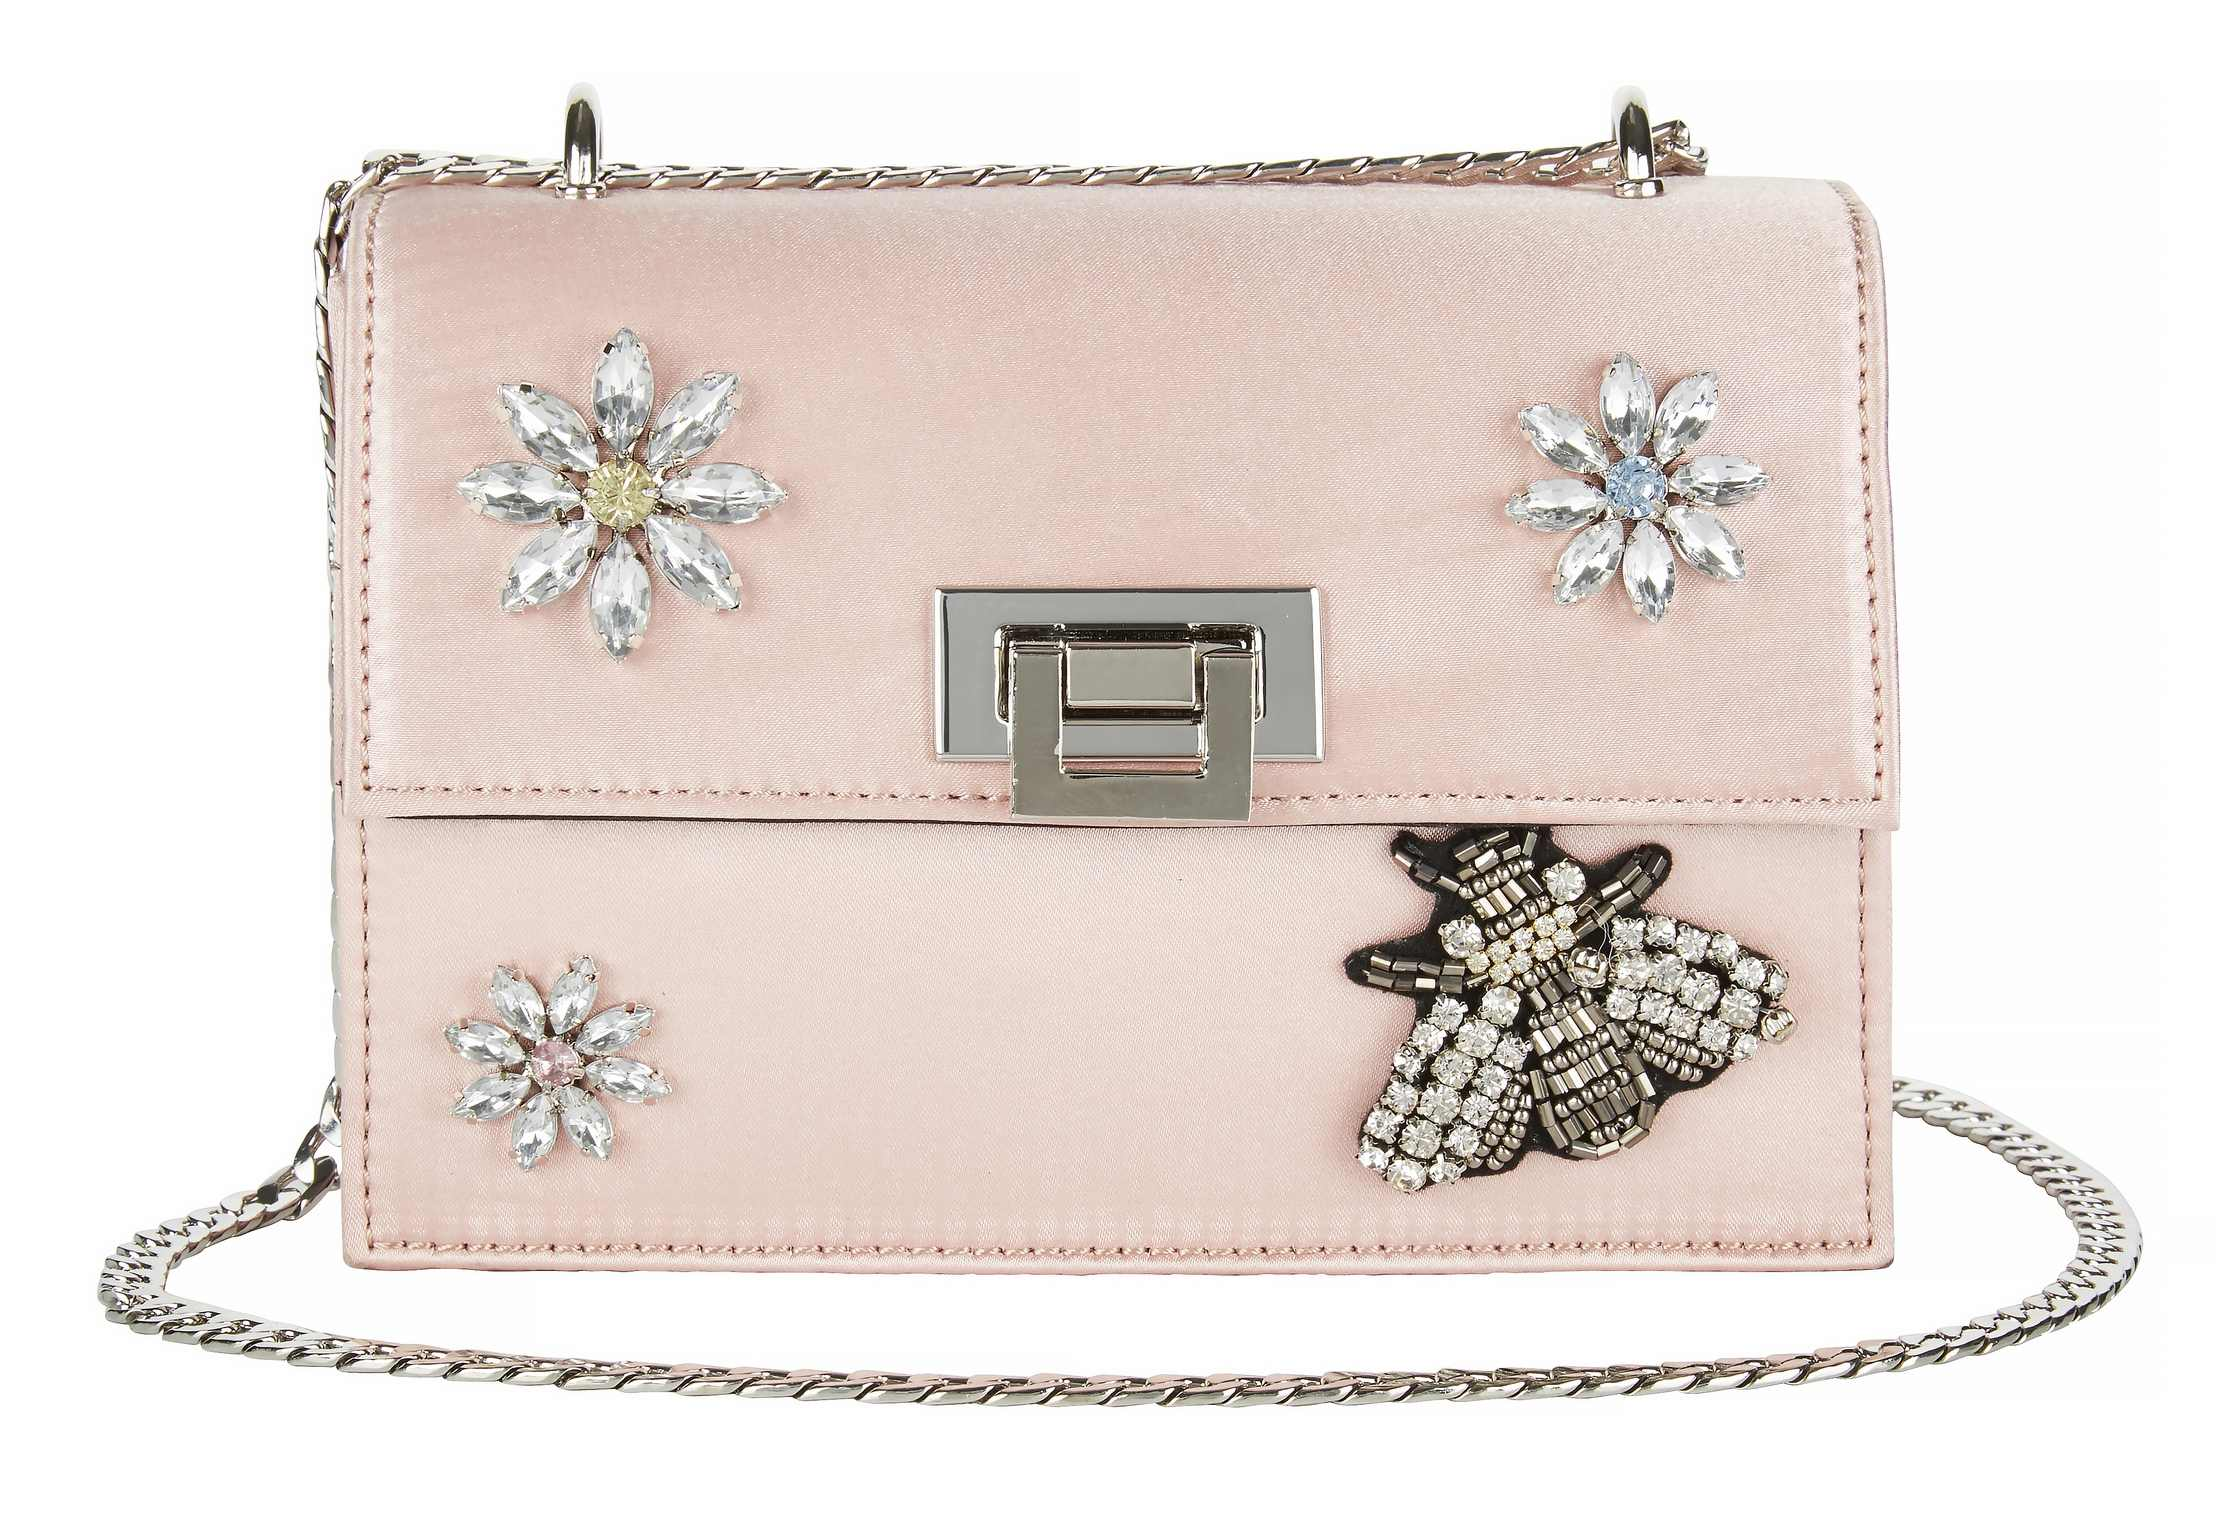 6. V by Very Flower and Bumble Bee Embellished Crossbody Bag, £28 (Very/PA)